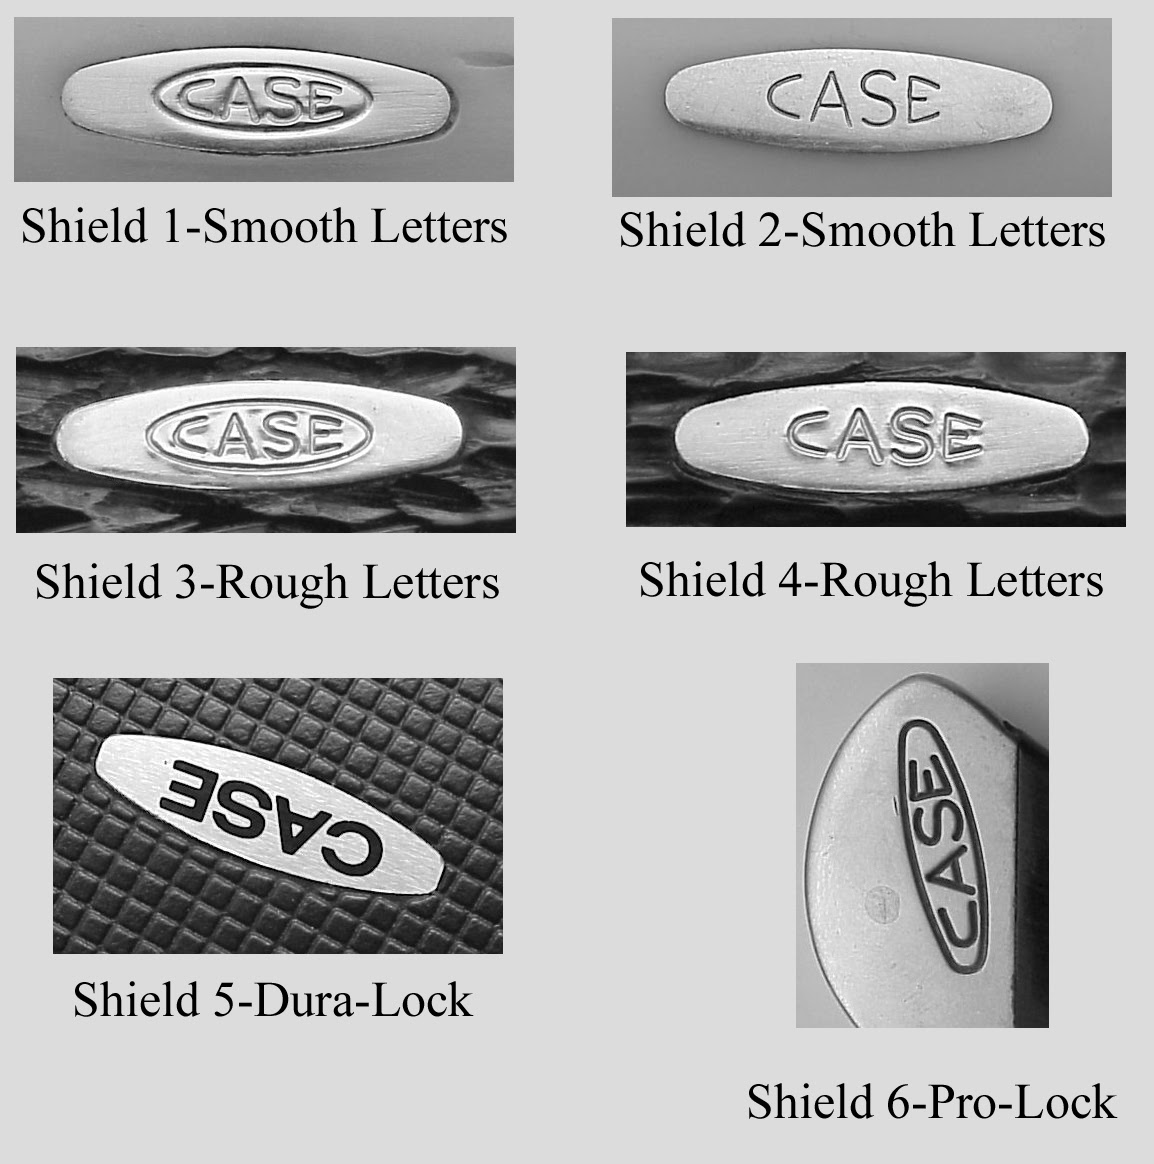 Case knife dating chart